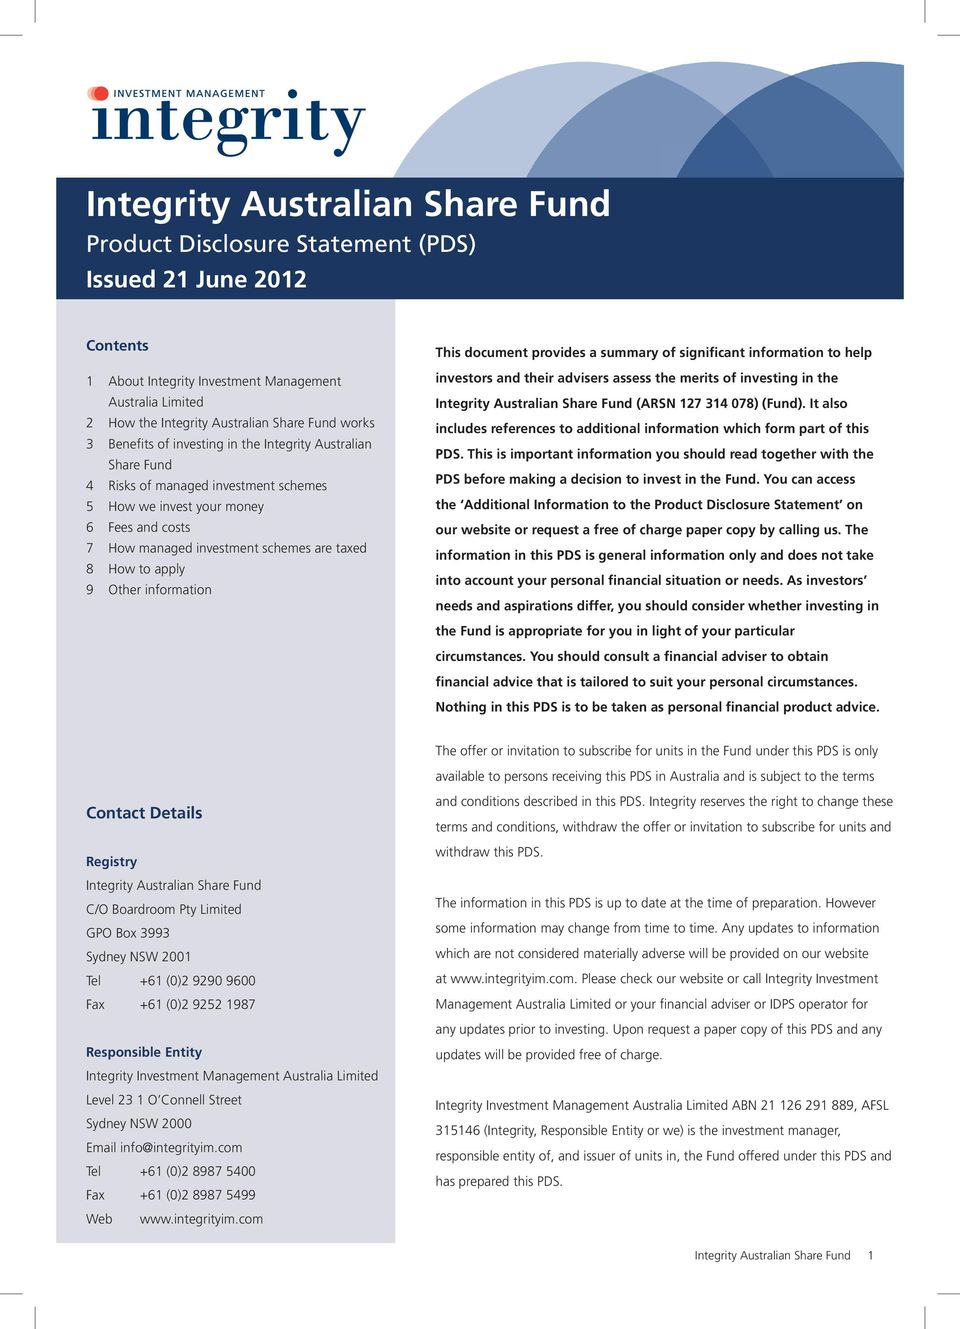 to apply 9 Other information This document provides a summary of significant information to help investors and their advisers assess the merits of investing in the Integrity Australian Share Fund